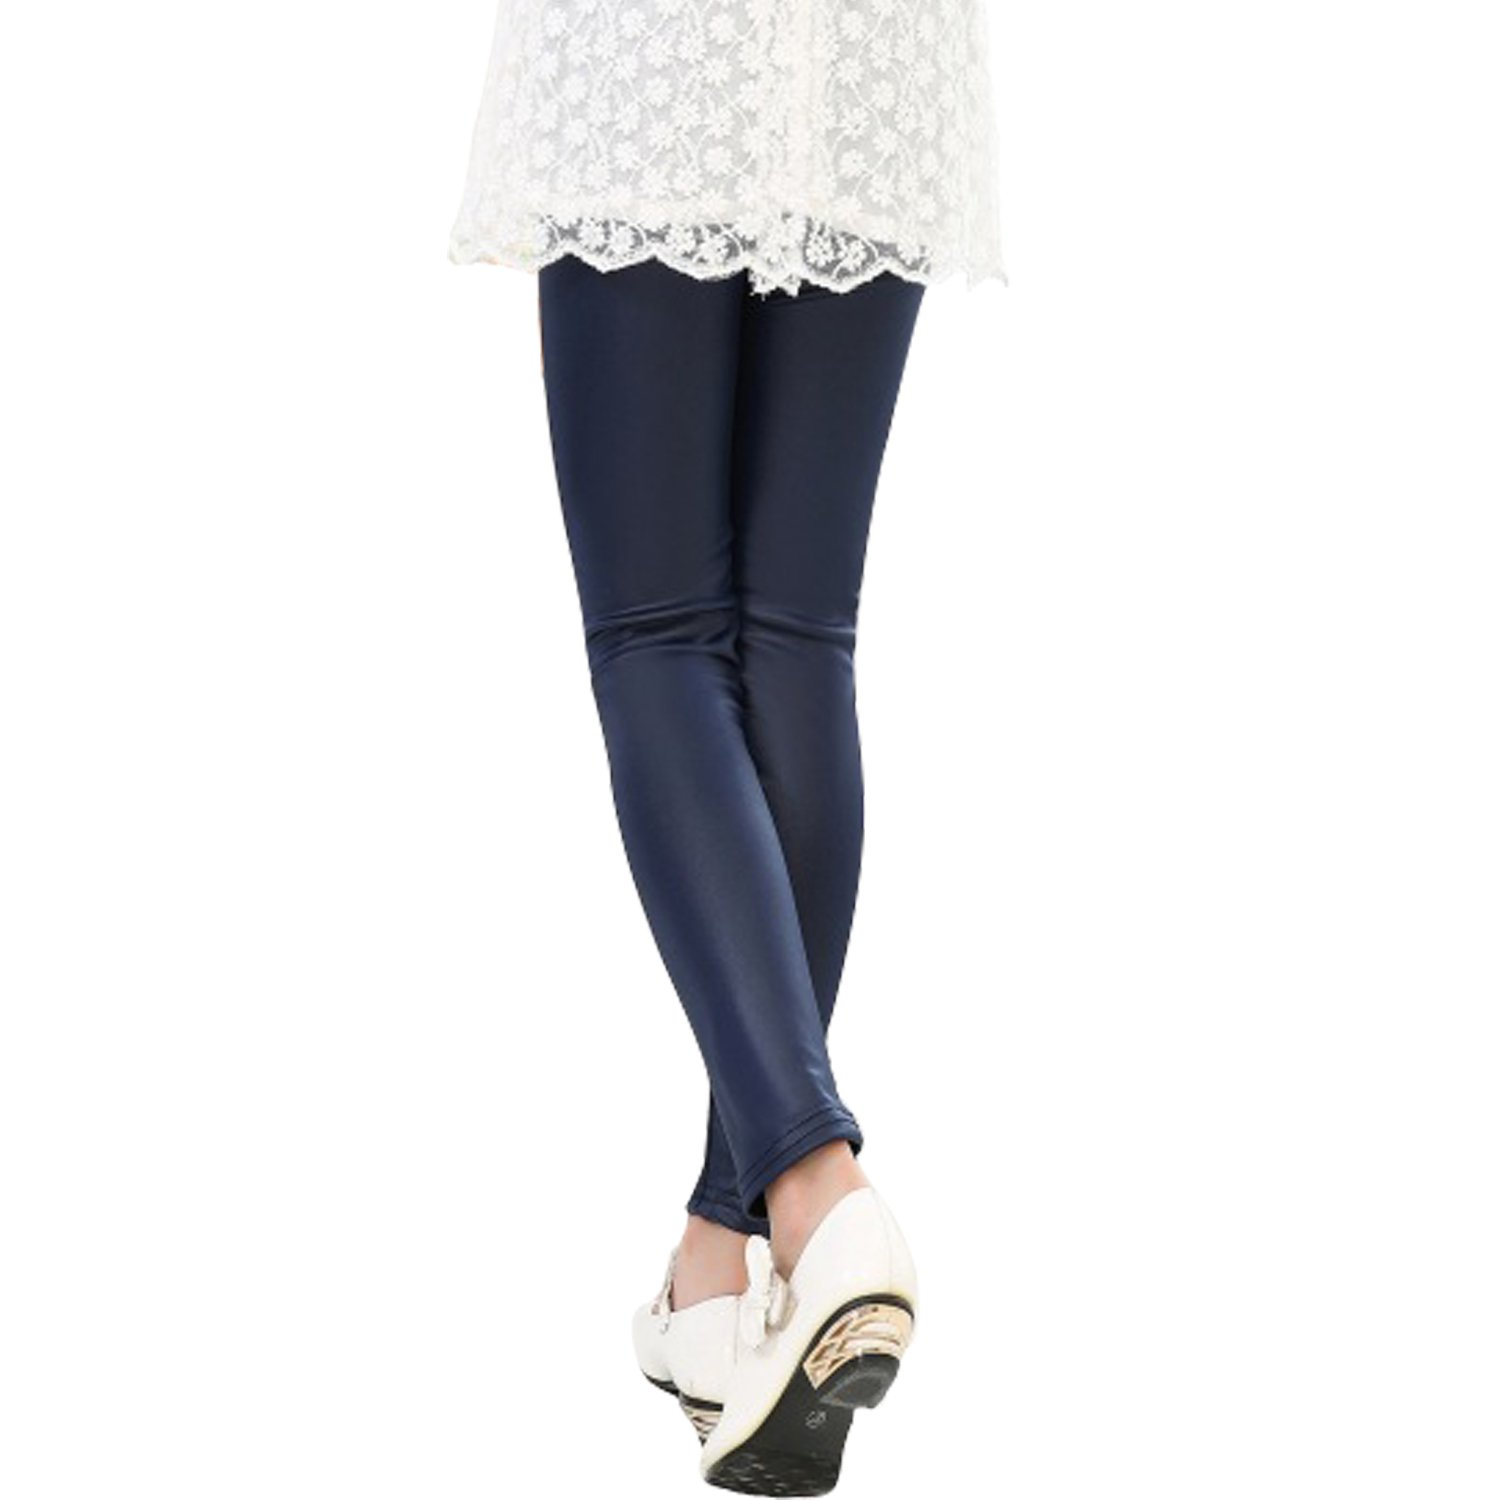 Tulucky Girls Stretchy Faux Leather Legging Teens Pants(darkblue,Tag140) by Tulucky (Image #2)